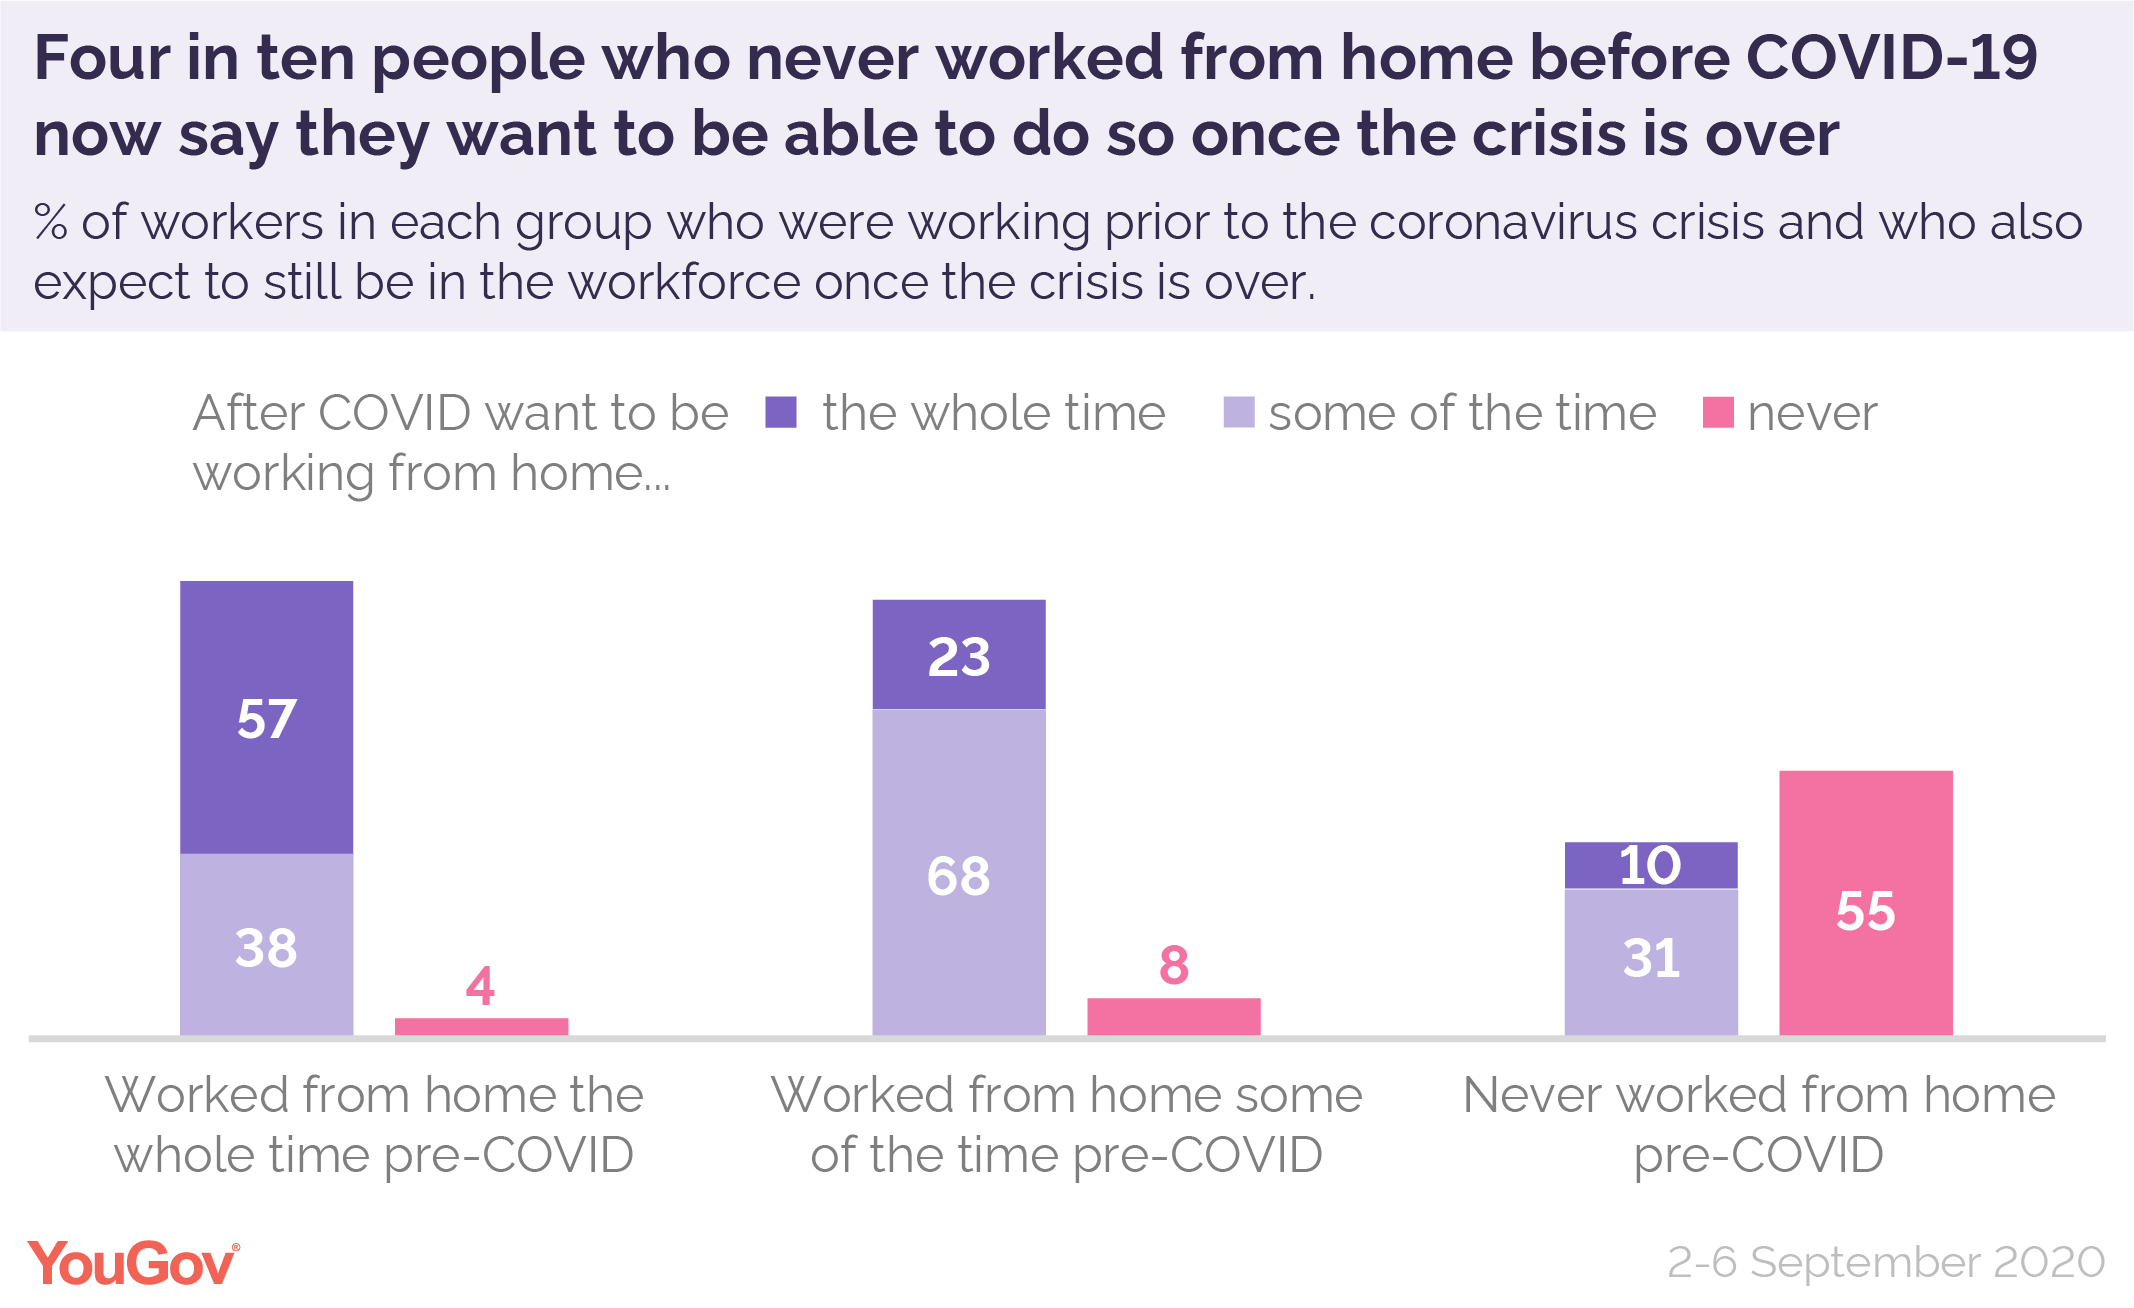 What people want depends on what they were doing before the outbreak, and whether or not they've been able to work from home during lockdown